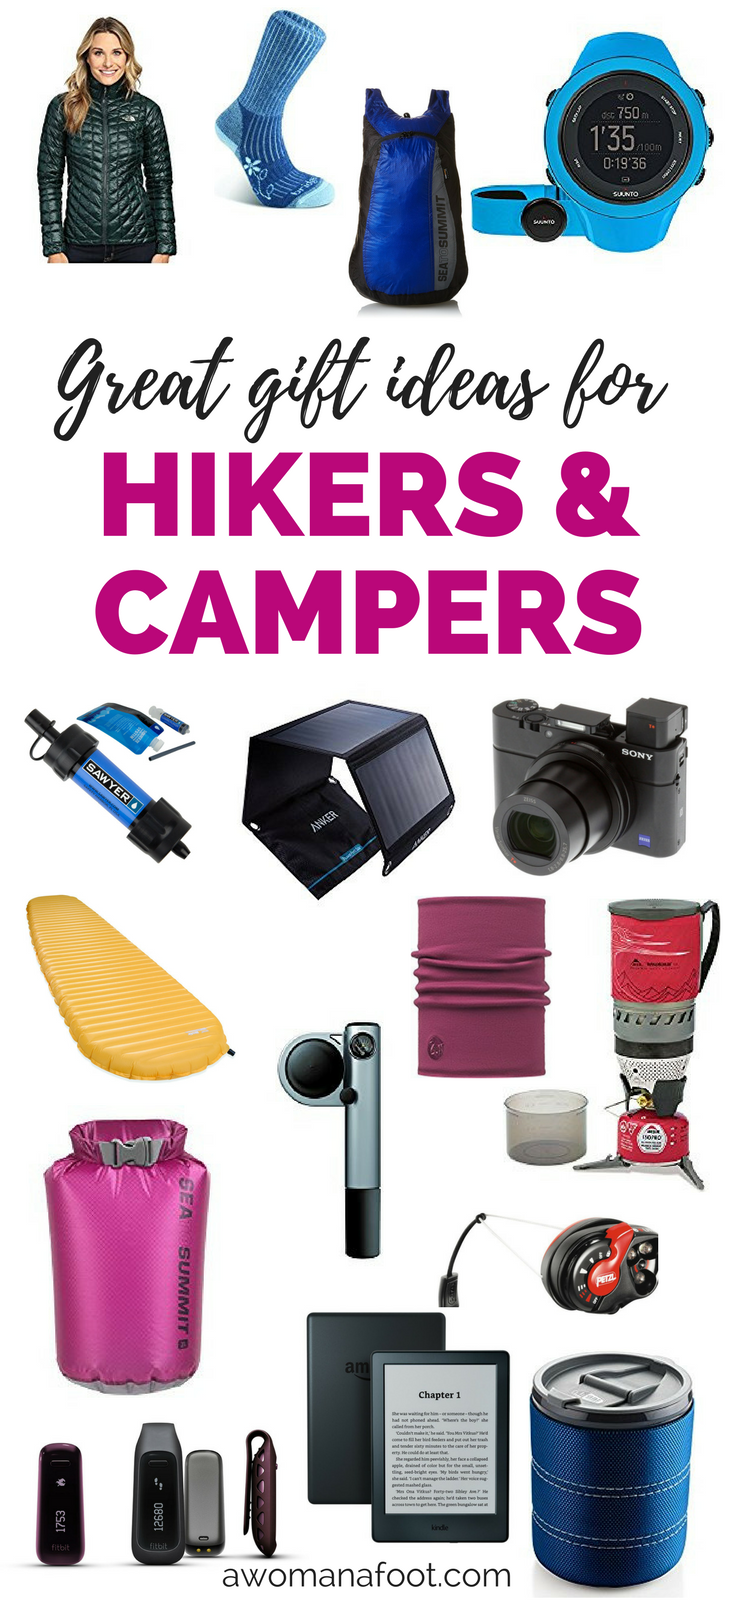 A Sweet Little List of Cool Hiking & Camping Gadgets ...